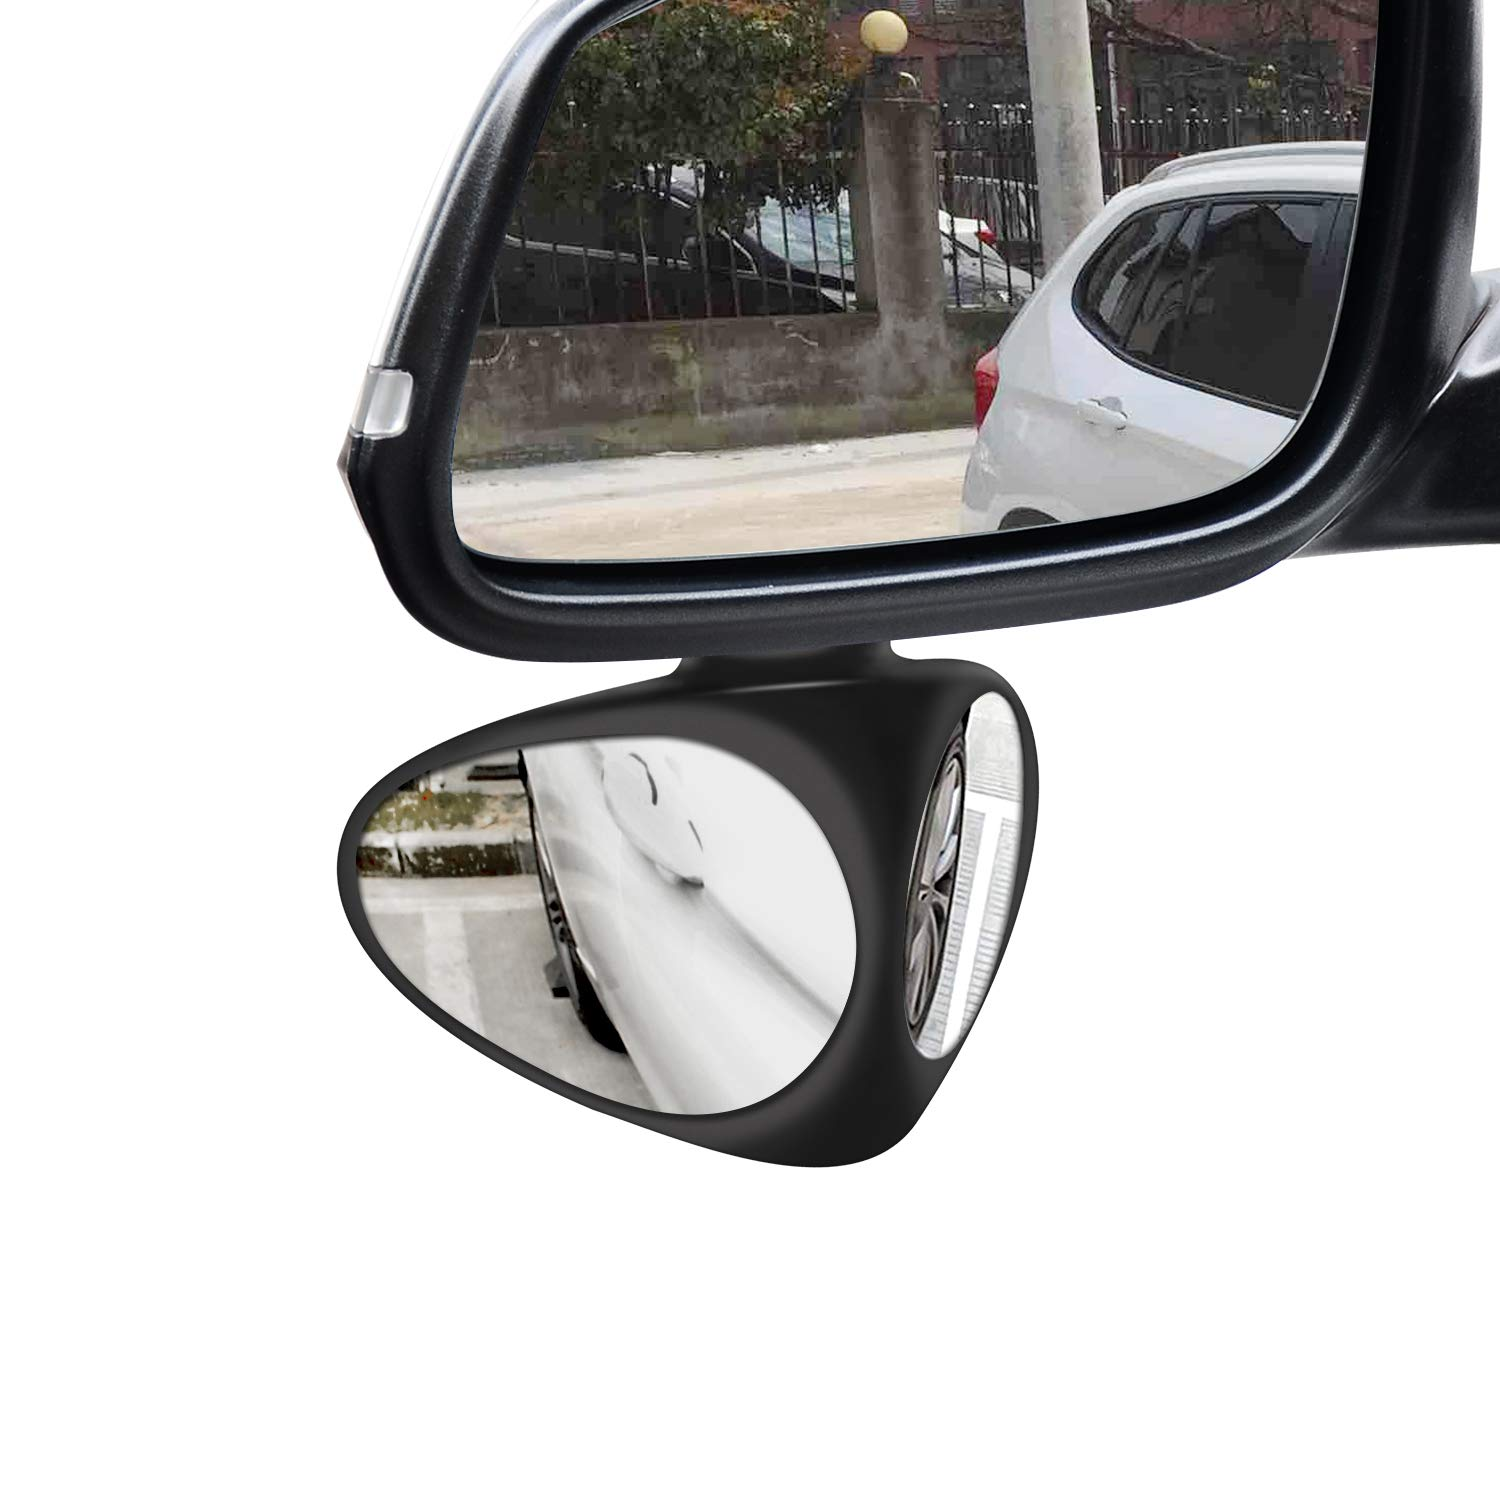 Car Blind Spot Mirror, 360 Degree Rotate Adjustable Stick-on Convex Rear View Mirror, View Front Wheel Car Coach Mirror for Car,SUV,and Truck (Left,Black 1 Pack with 2 Pack Car Rearview Mirror Film) WINDSORD